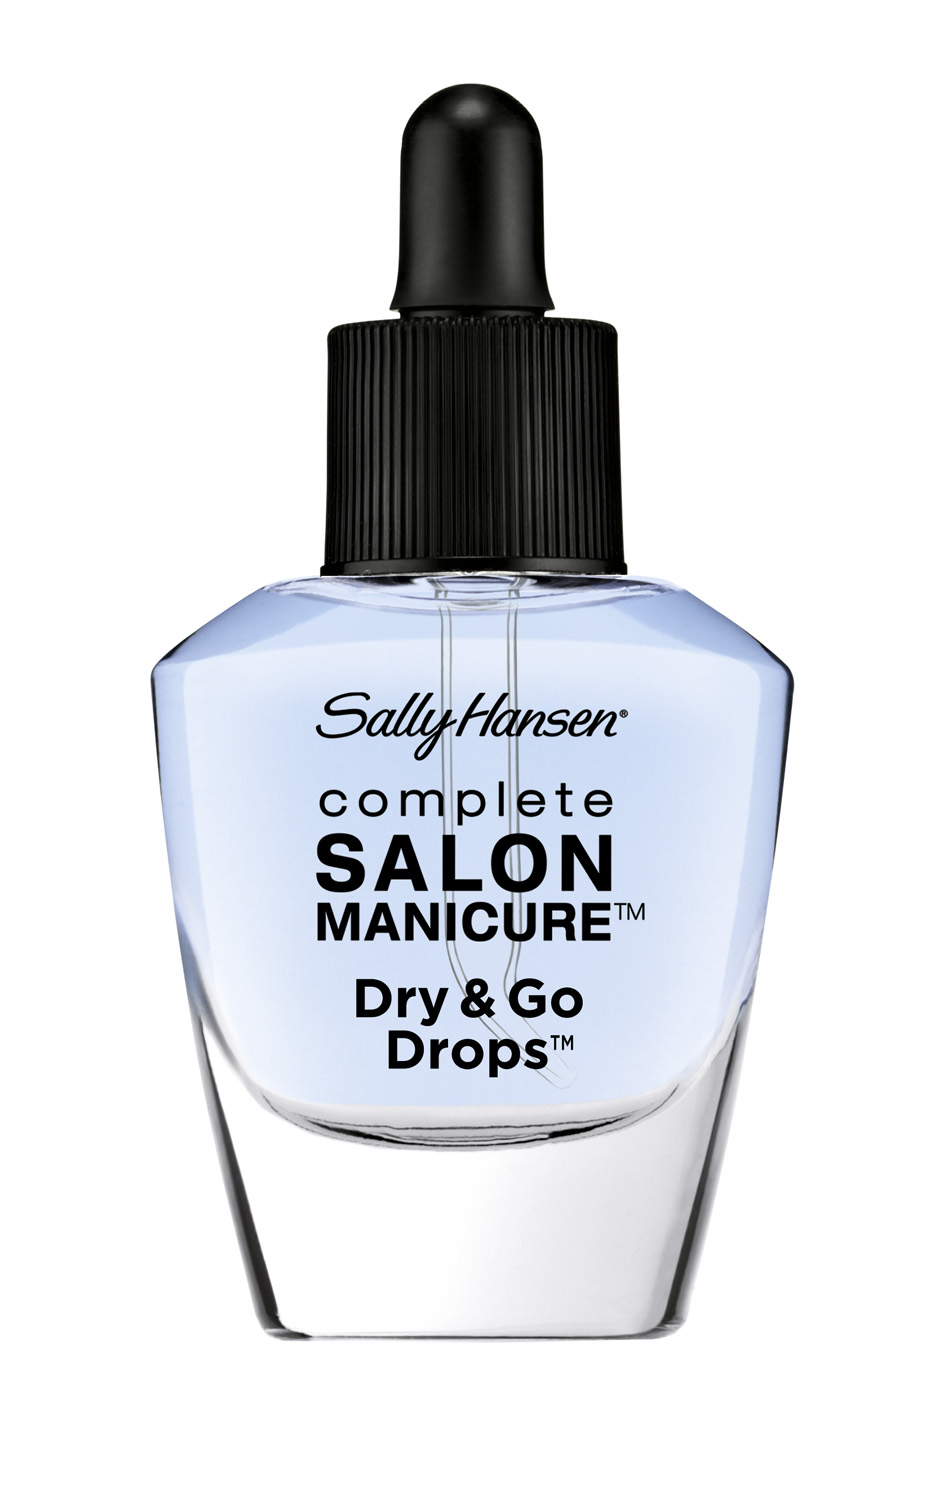 Salon-Like Quick Drying Nails in 60 Seconds: With Complete Salon ...